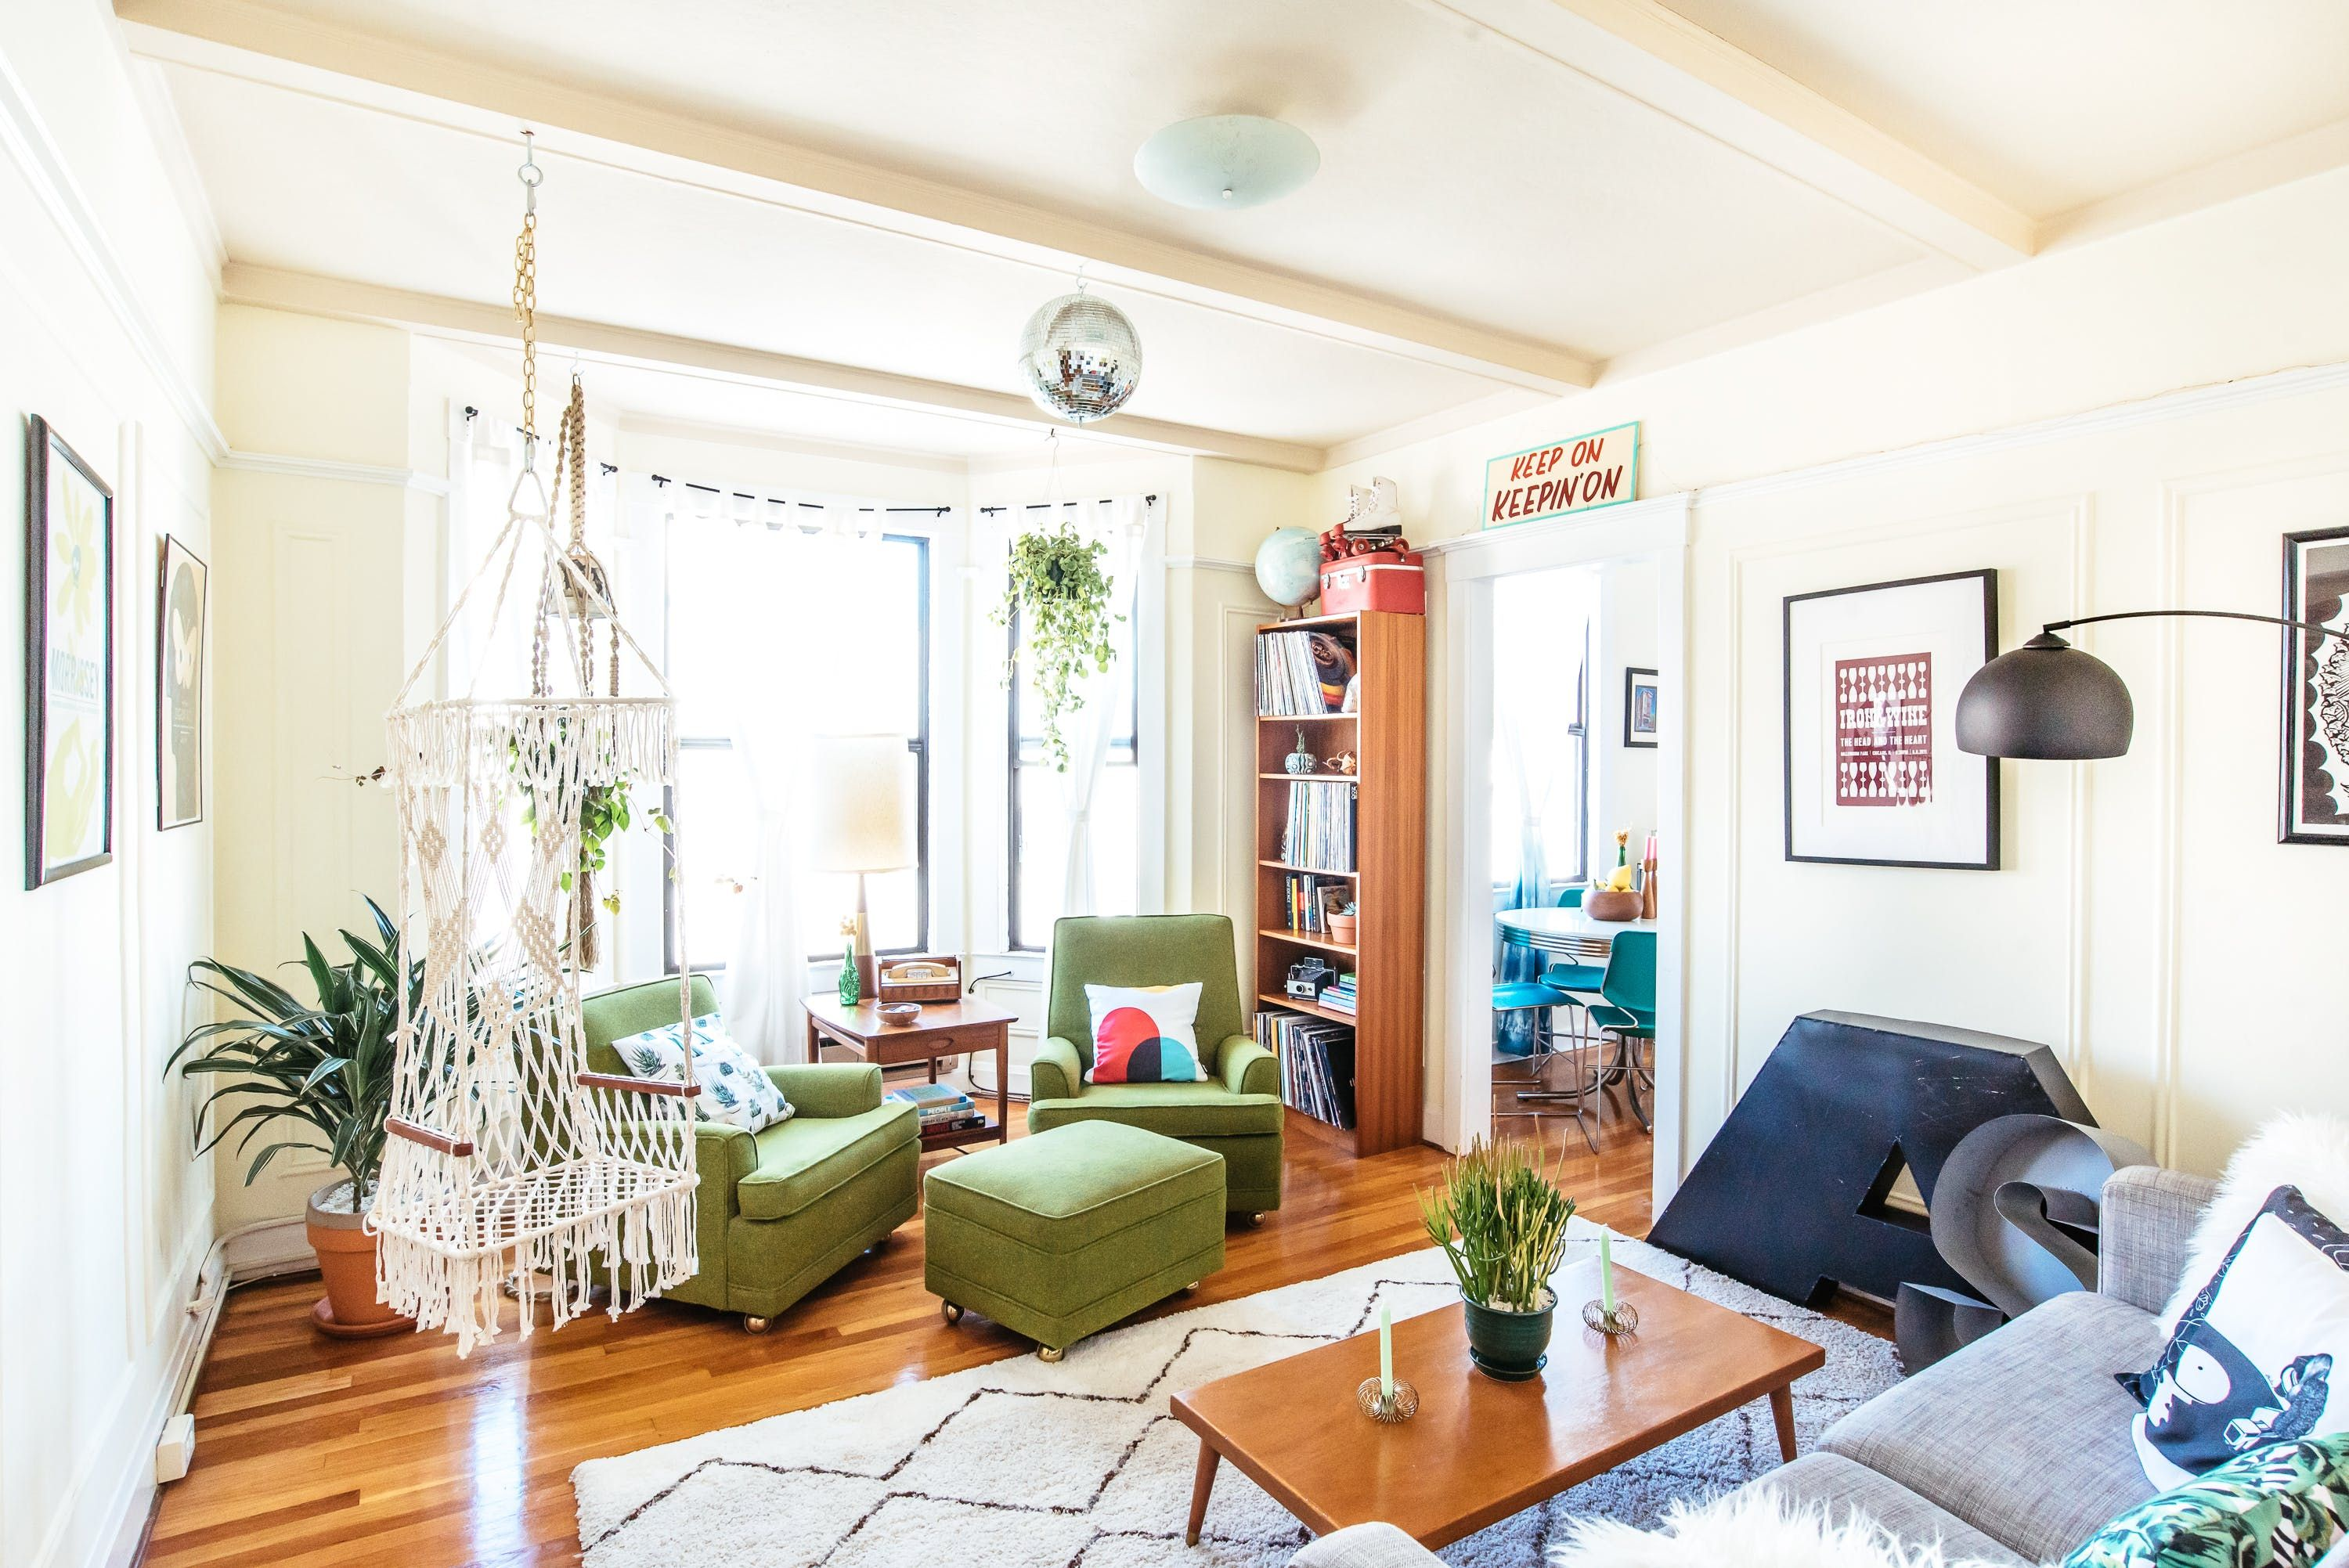 A Craigslist Chic San Francisco Apartment | Renting, San francisco ...